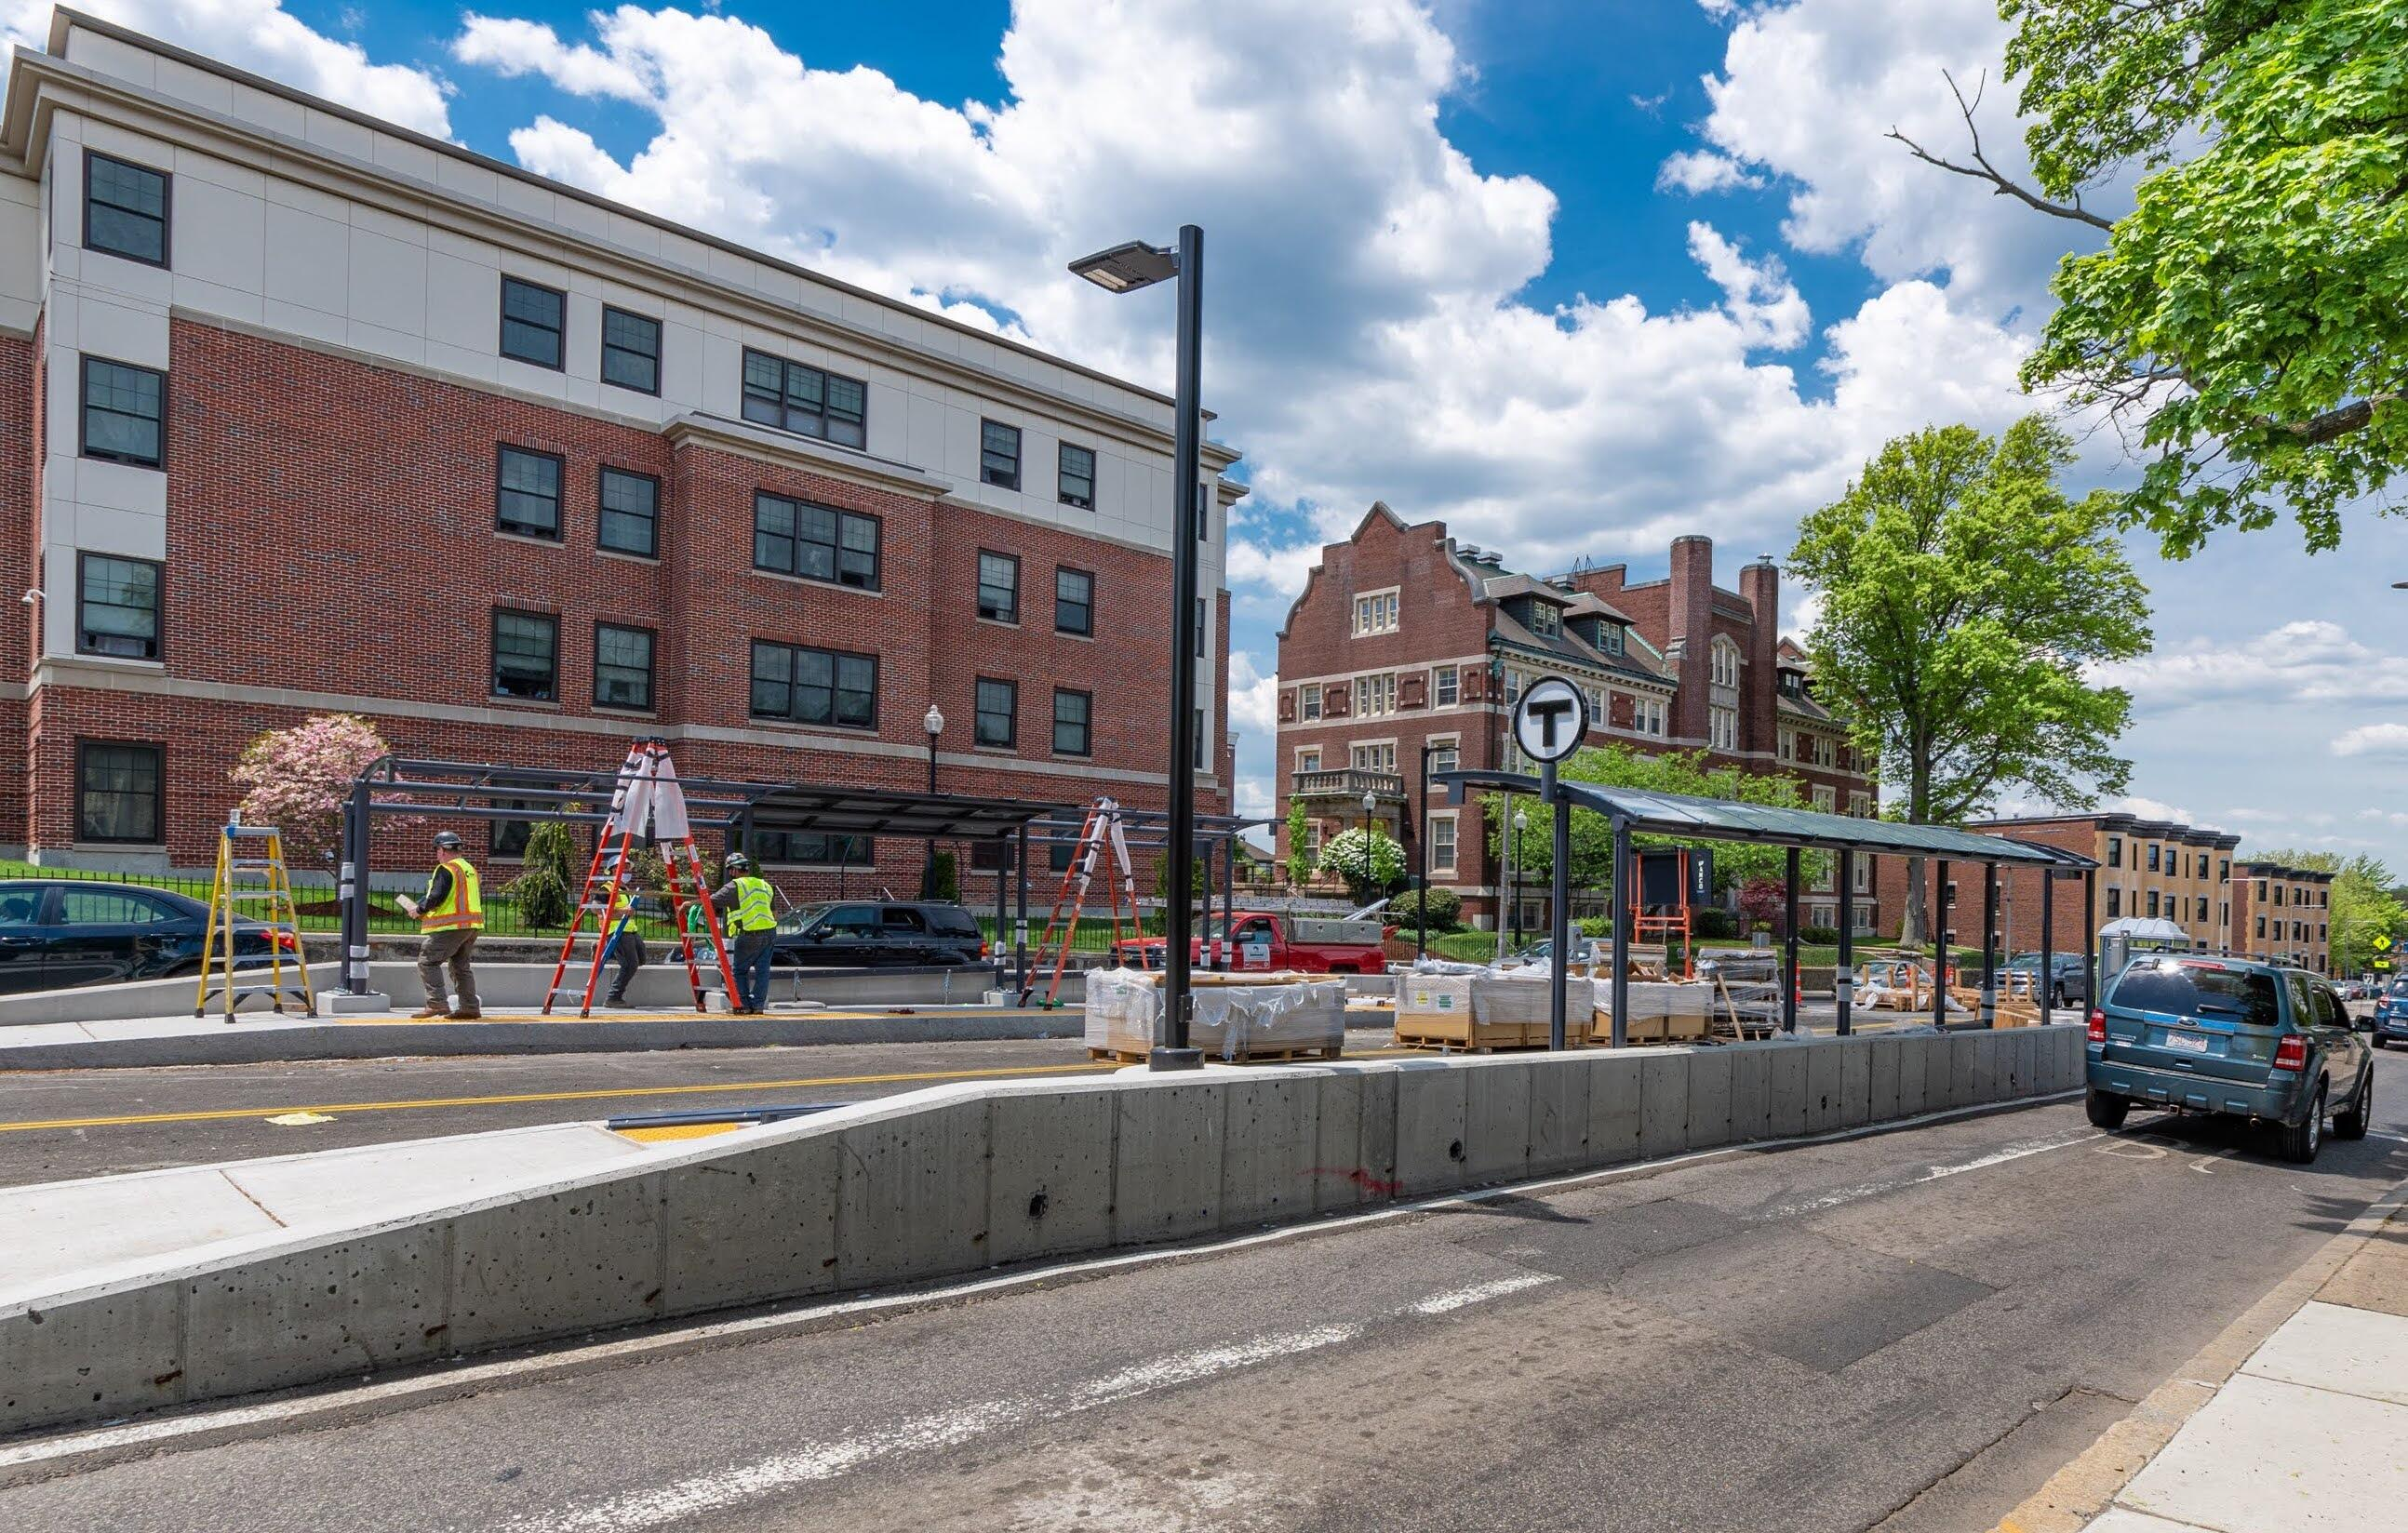 A newly completed canopy shelter on the Columbus Avenue center bus lane. Another canopy is under construction across the road.